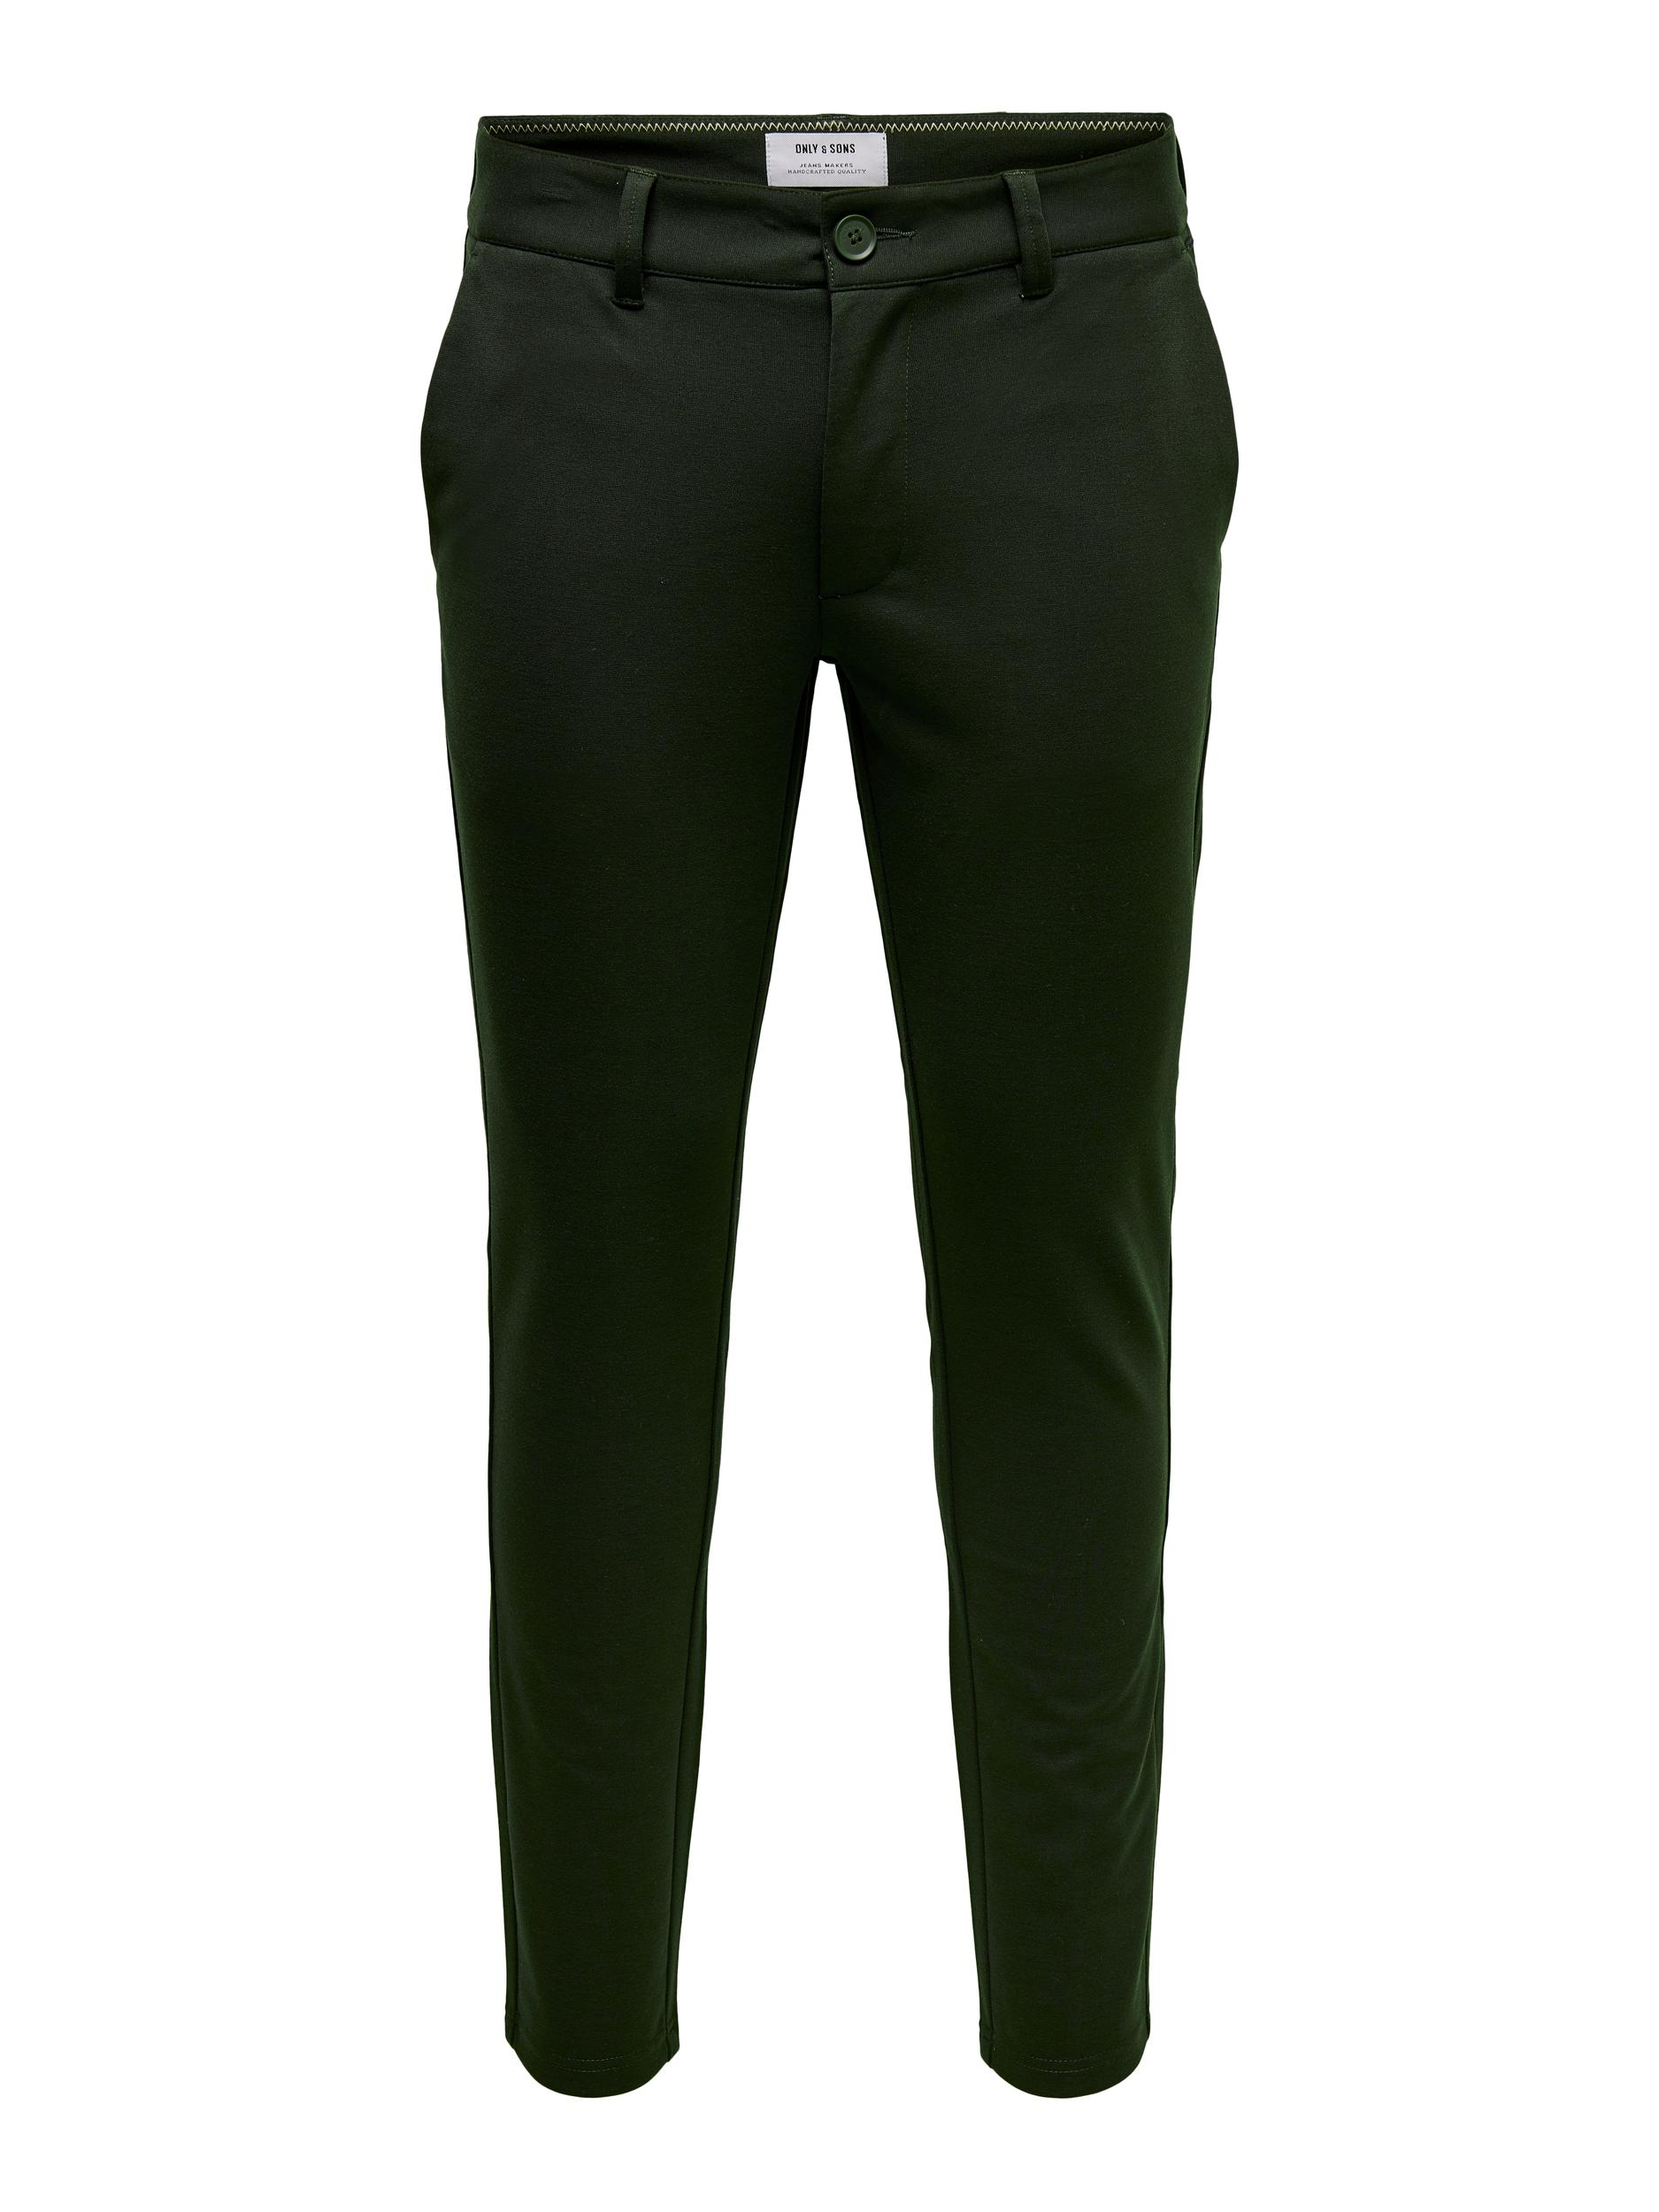 Performance Pants, Only & Sons, Mark chinos, rosin, 33/34